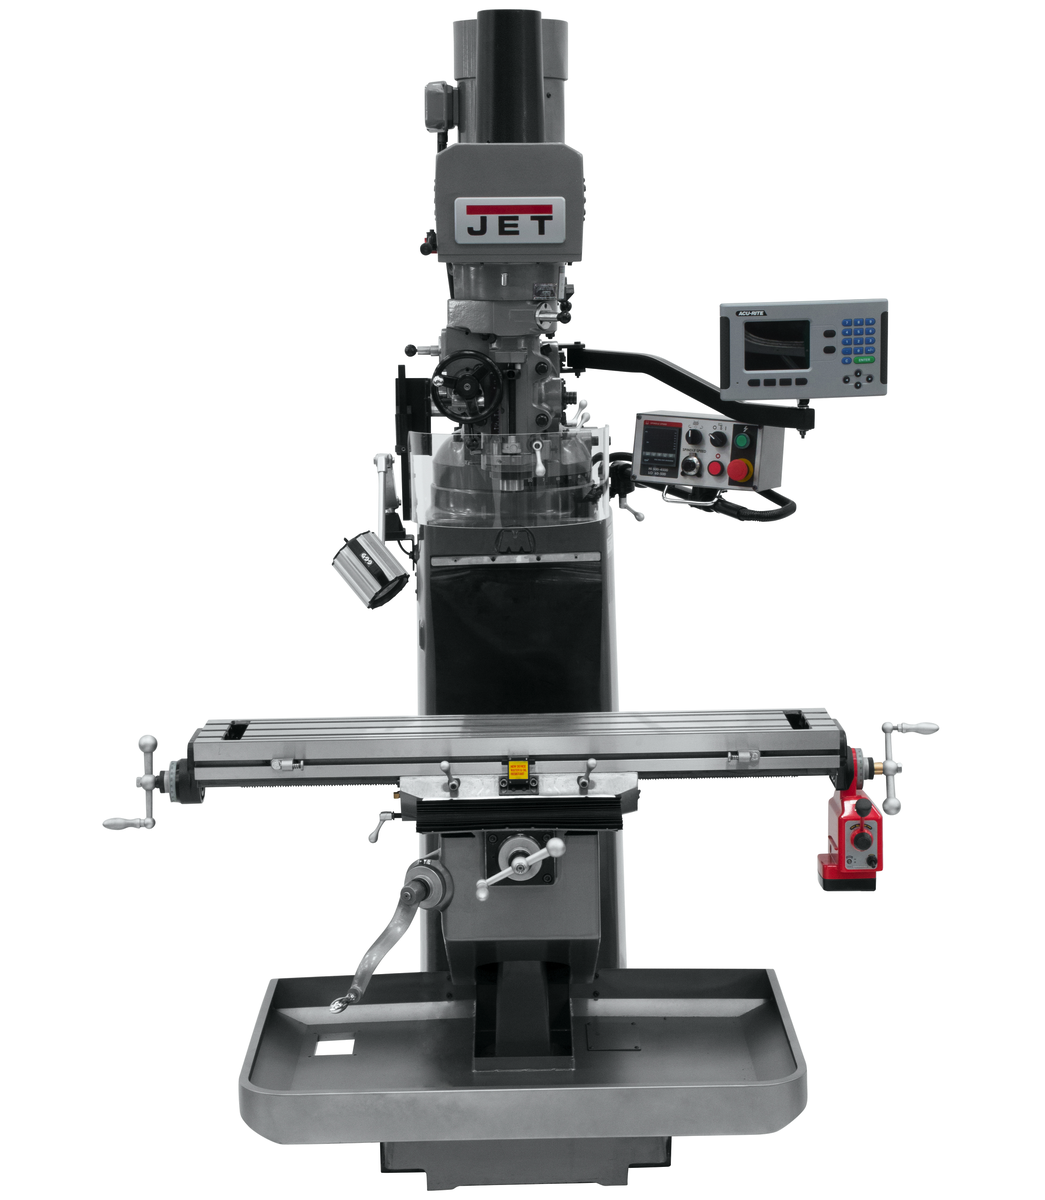 JTM-949EVS Mill With 3-Axis Acu-Rite 203 DRO (Knee) With X-Axis Powerfeed and Air Powered Draw Bar